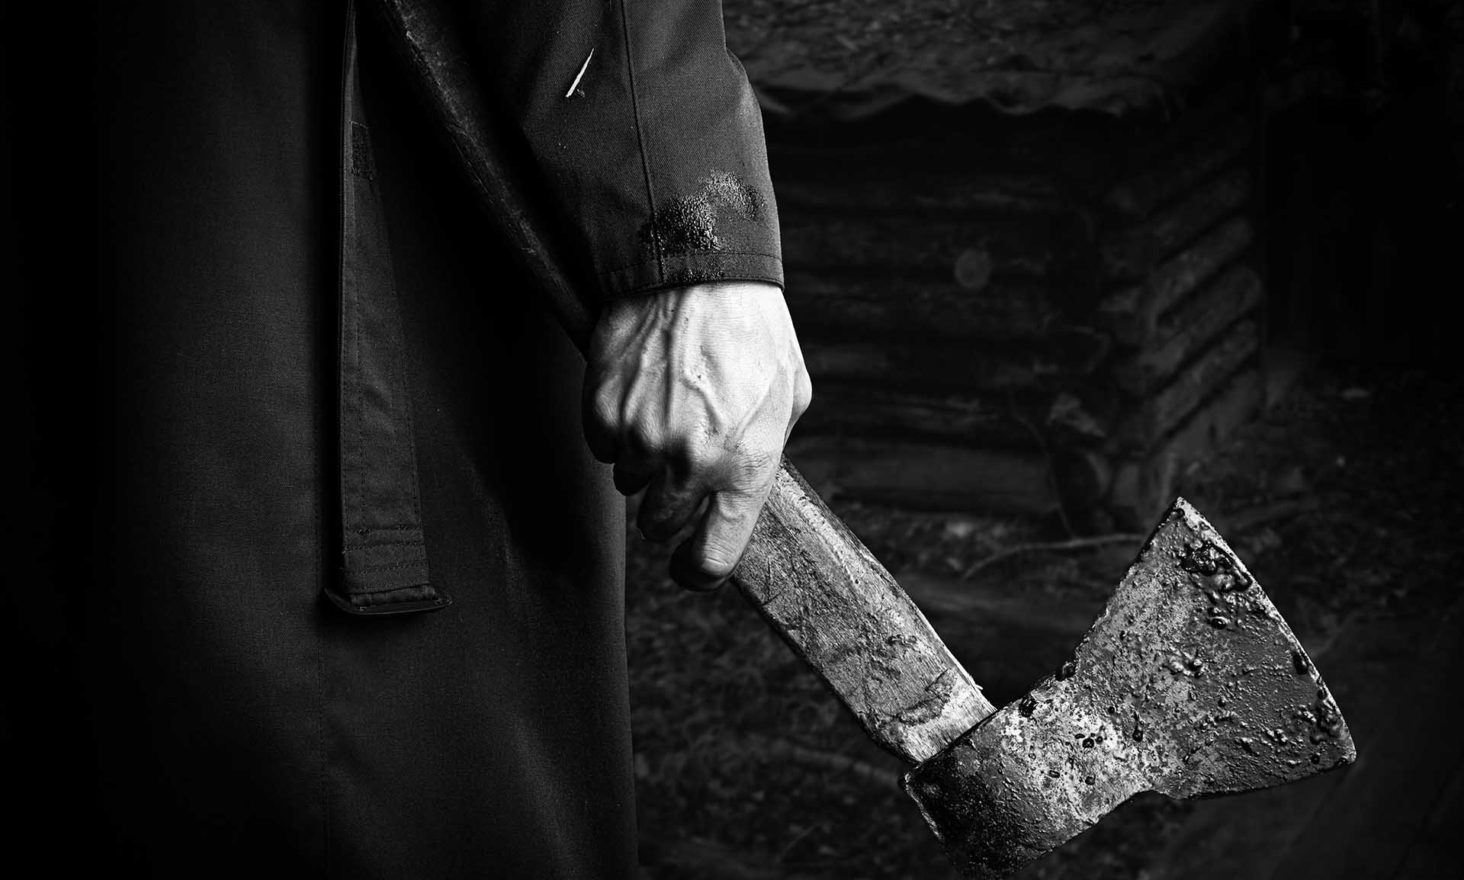 Bitcoin Cash Gets the Axe - KuCoin Removes BCH Trading Pairs, Citing User Feedback